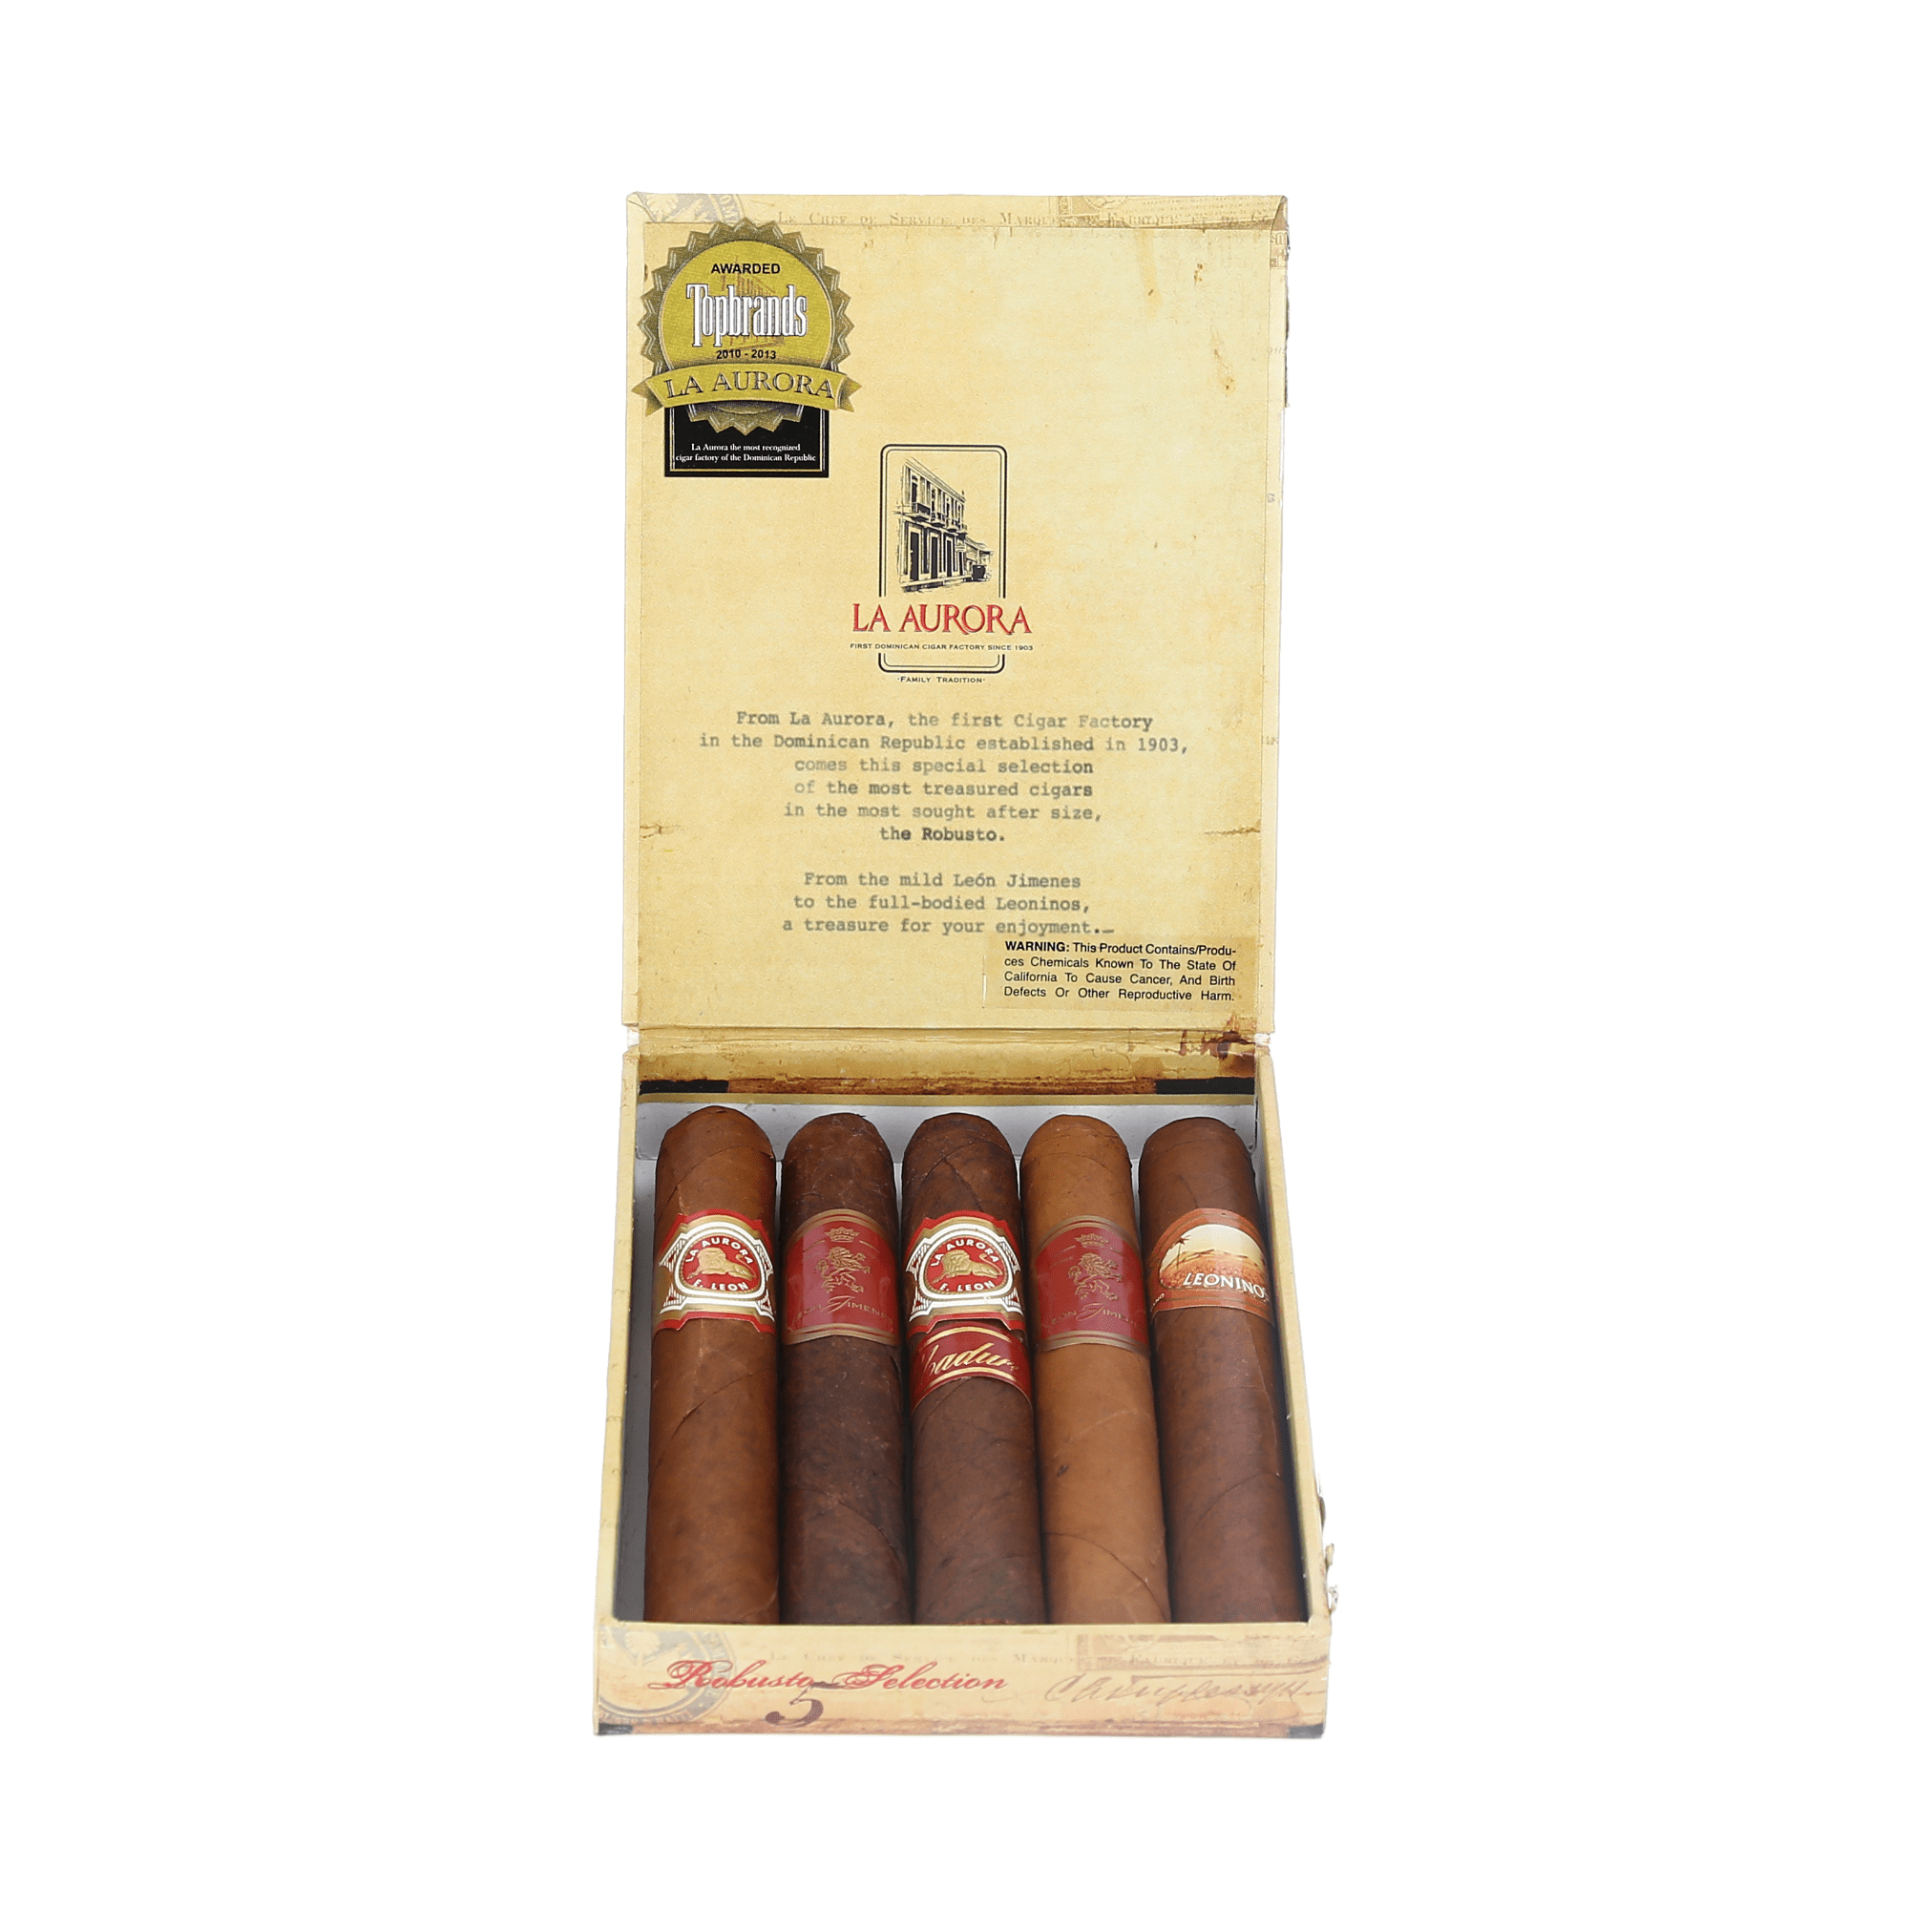 La Aurora Robusto Selection